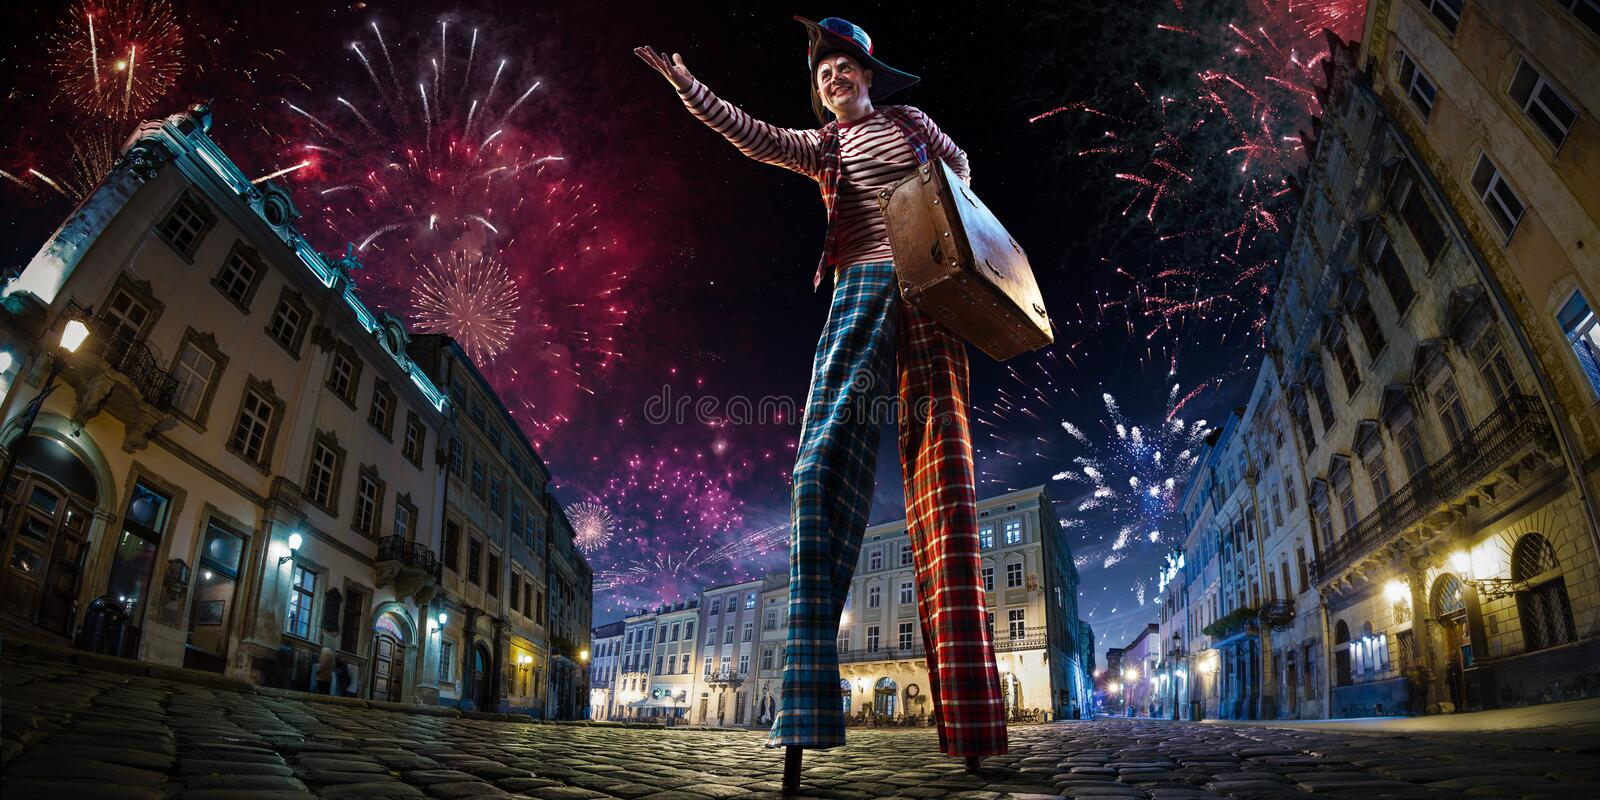 Night street circus performance whit clown. Festival city background. fireworks and Celebration atmosphere. Wide engle photo stock photos